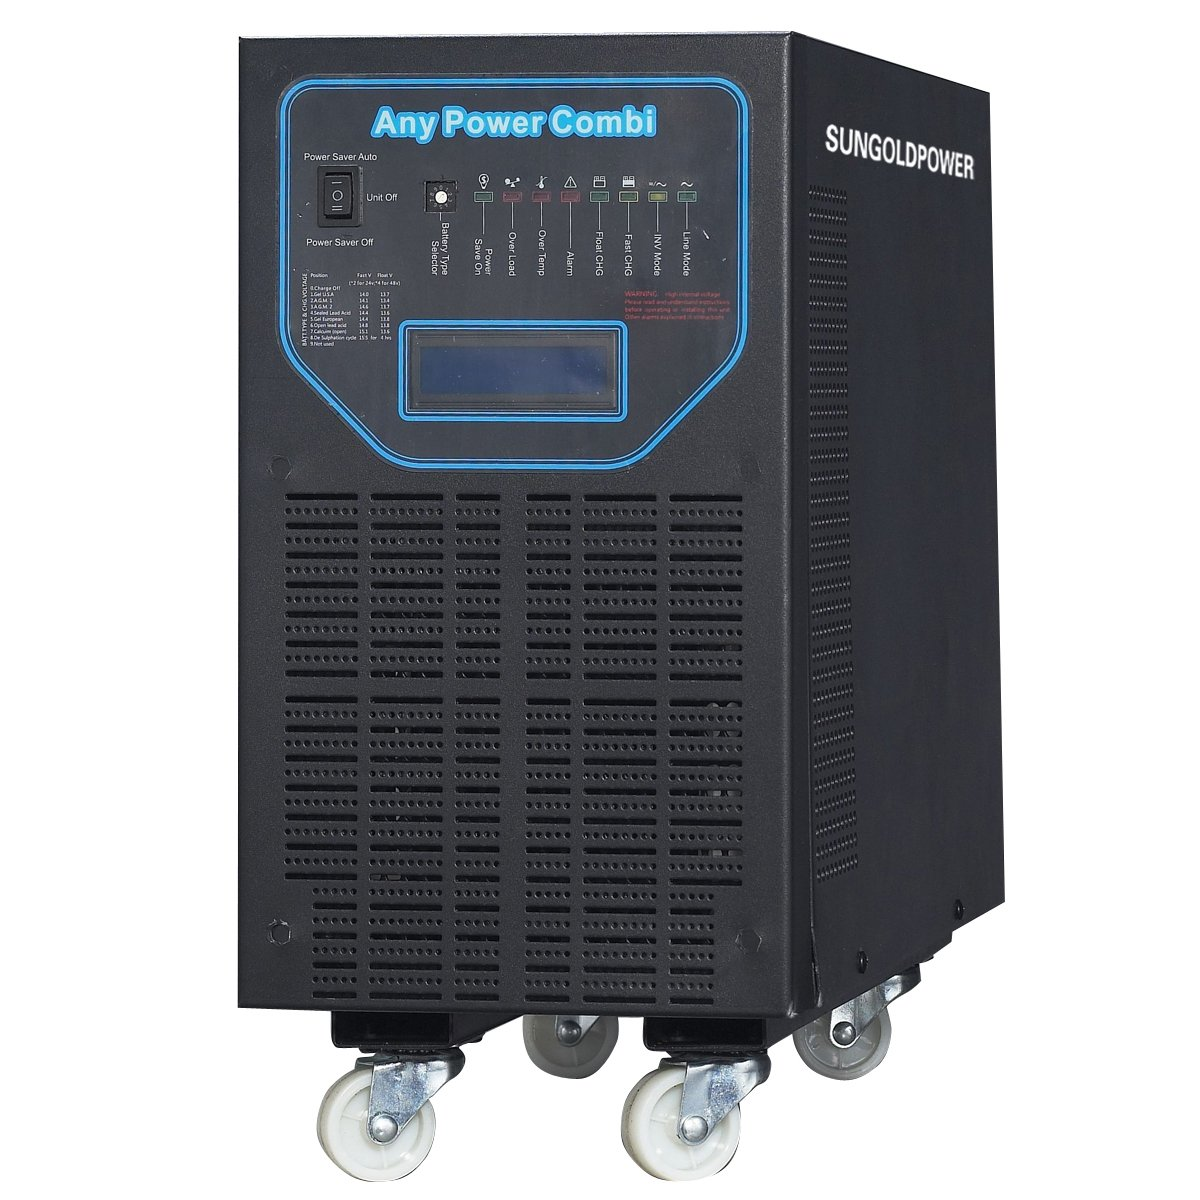 SUNGOLDPOWER 6000W Peak 18000W APV Low Frequency Pure Sine Wave Inverter DC 48V AC Input 240V Split Phase AC Output 120V 240V Battery Charger MPPT 40Amp Solar Charger Controller LCD.48KG